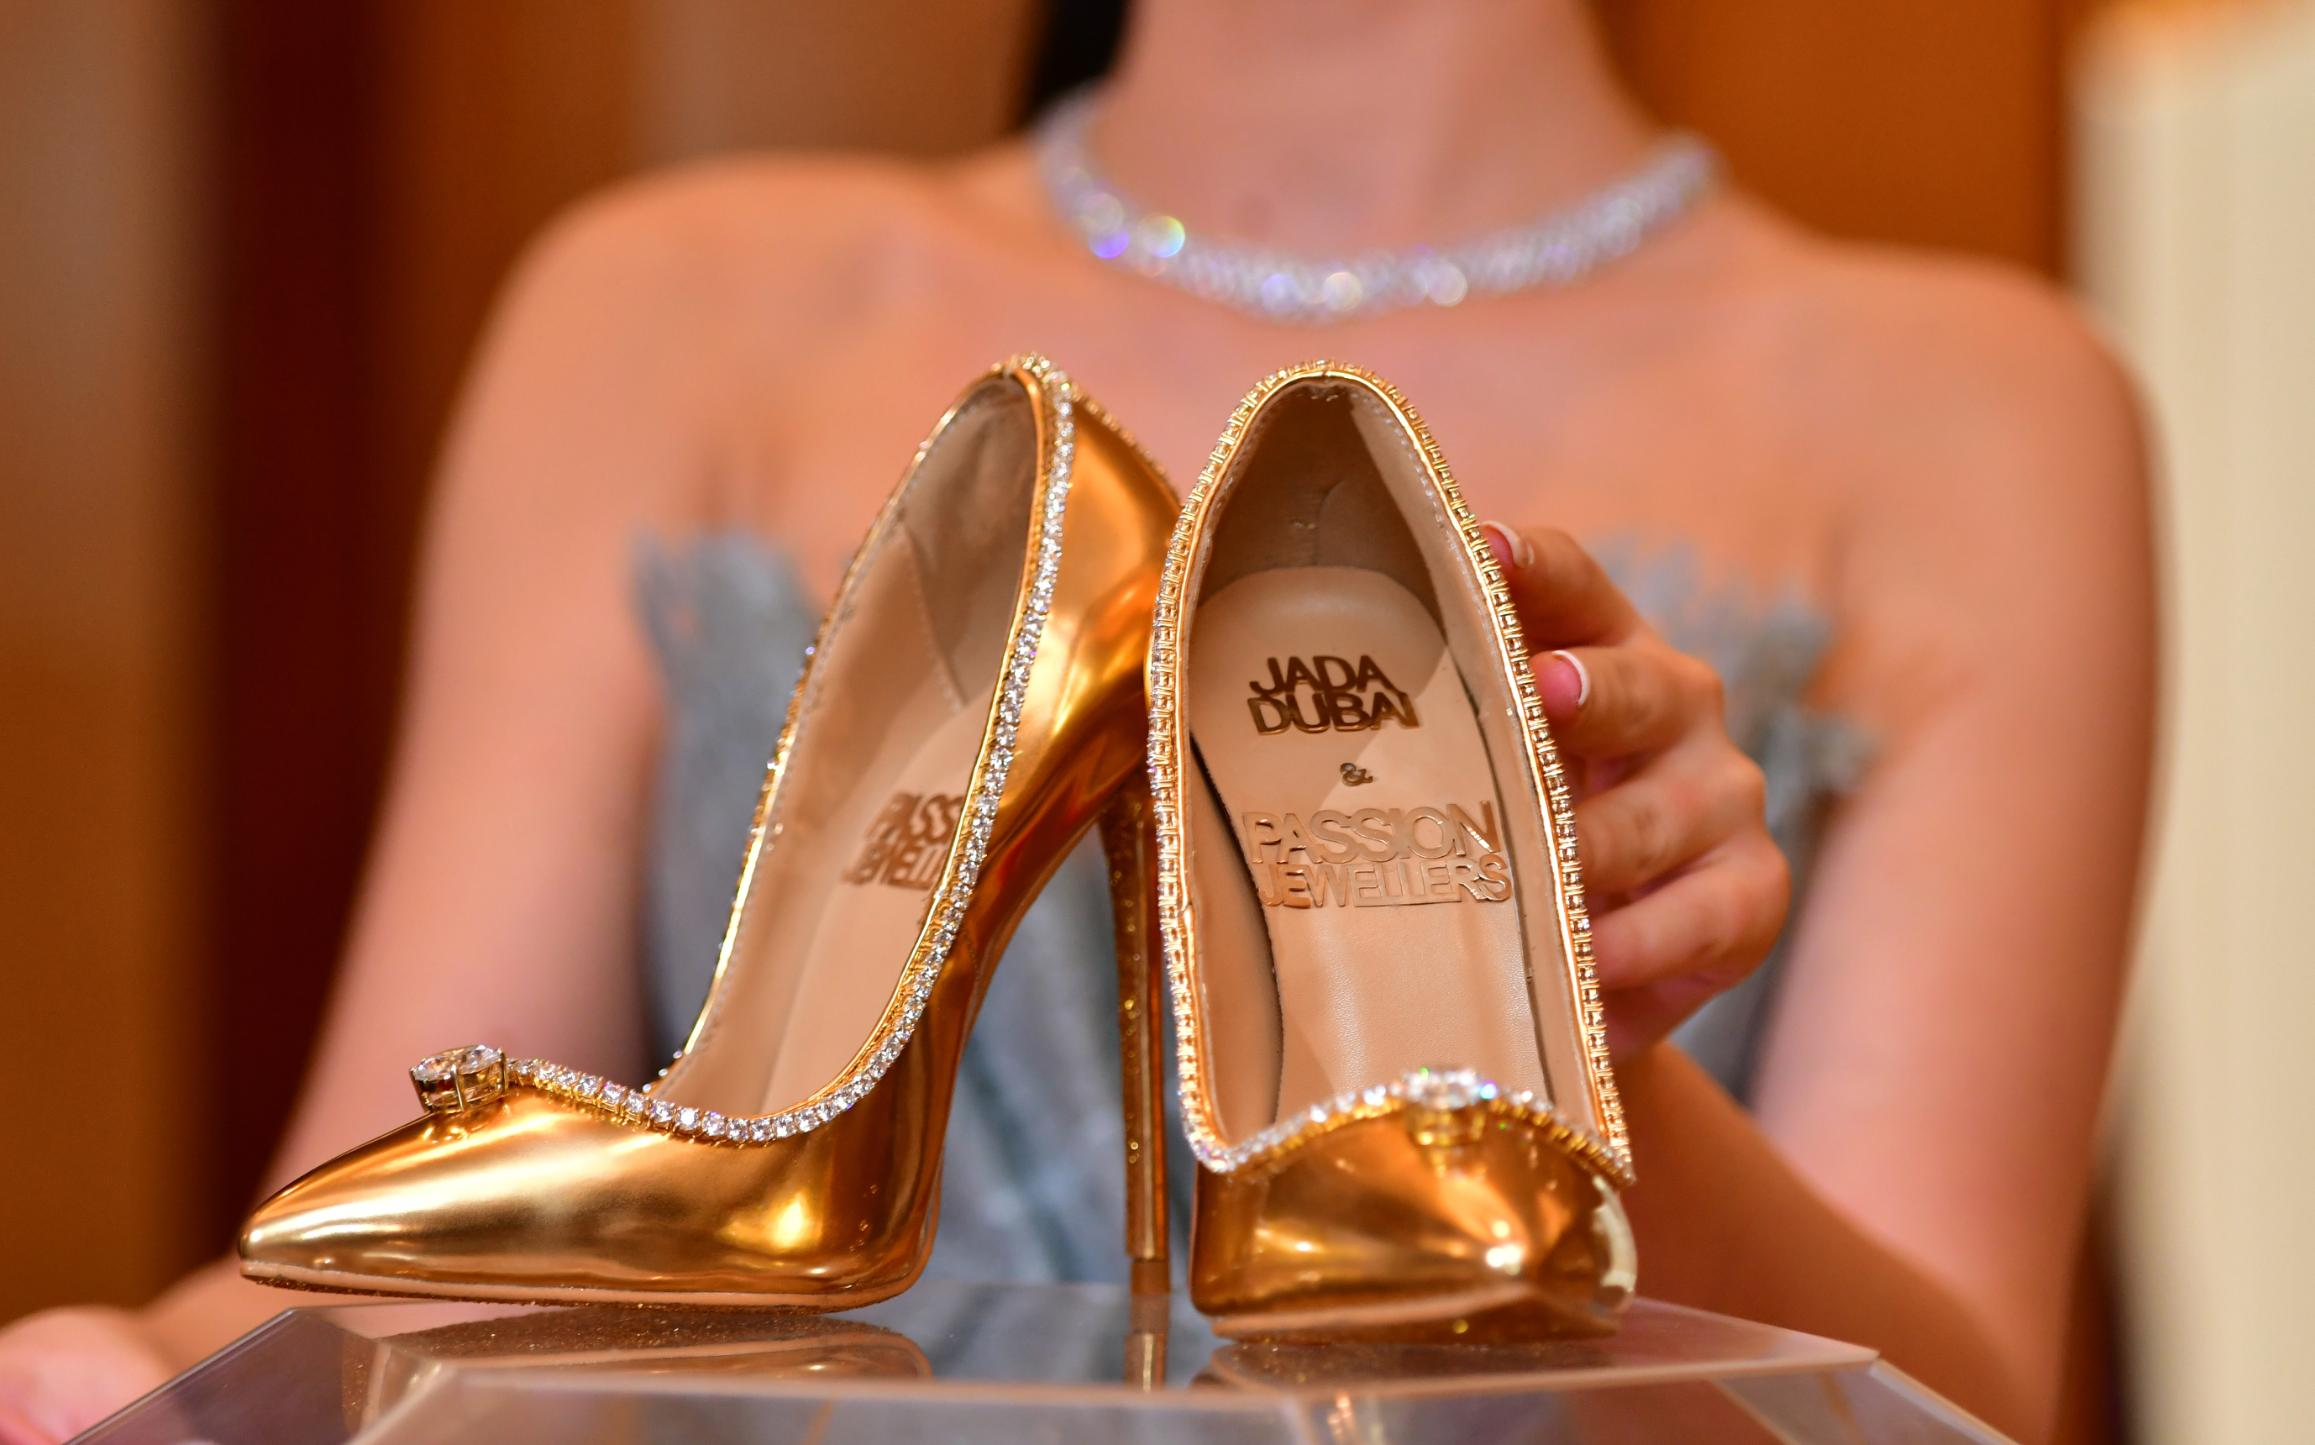 The most expensive shoes in the world